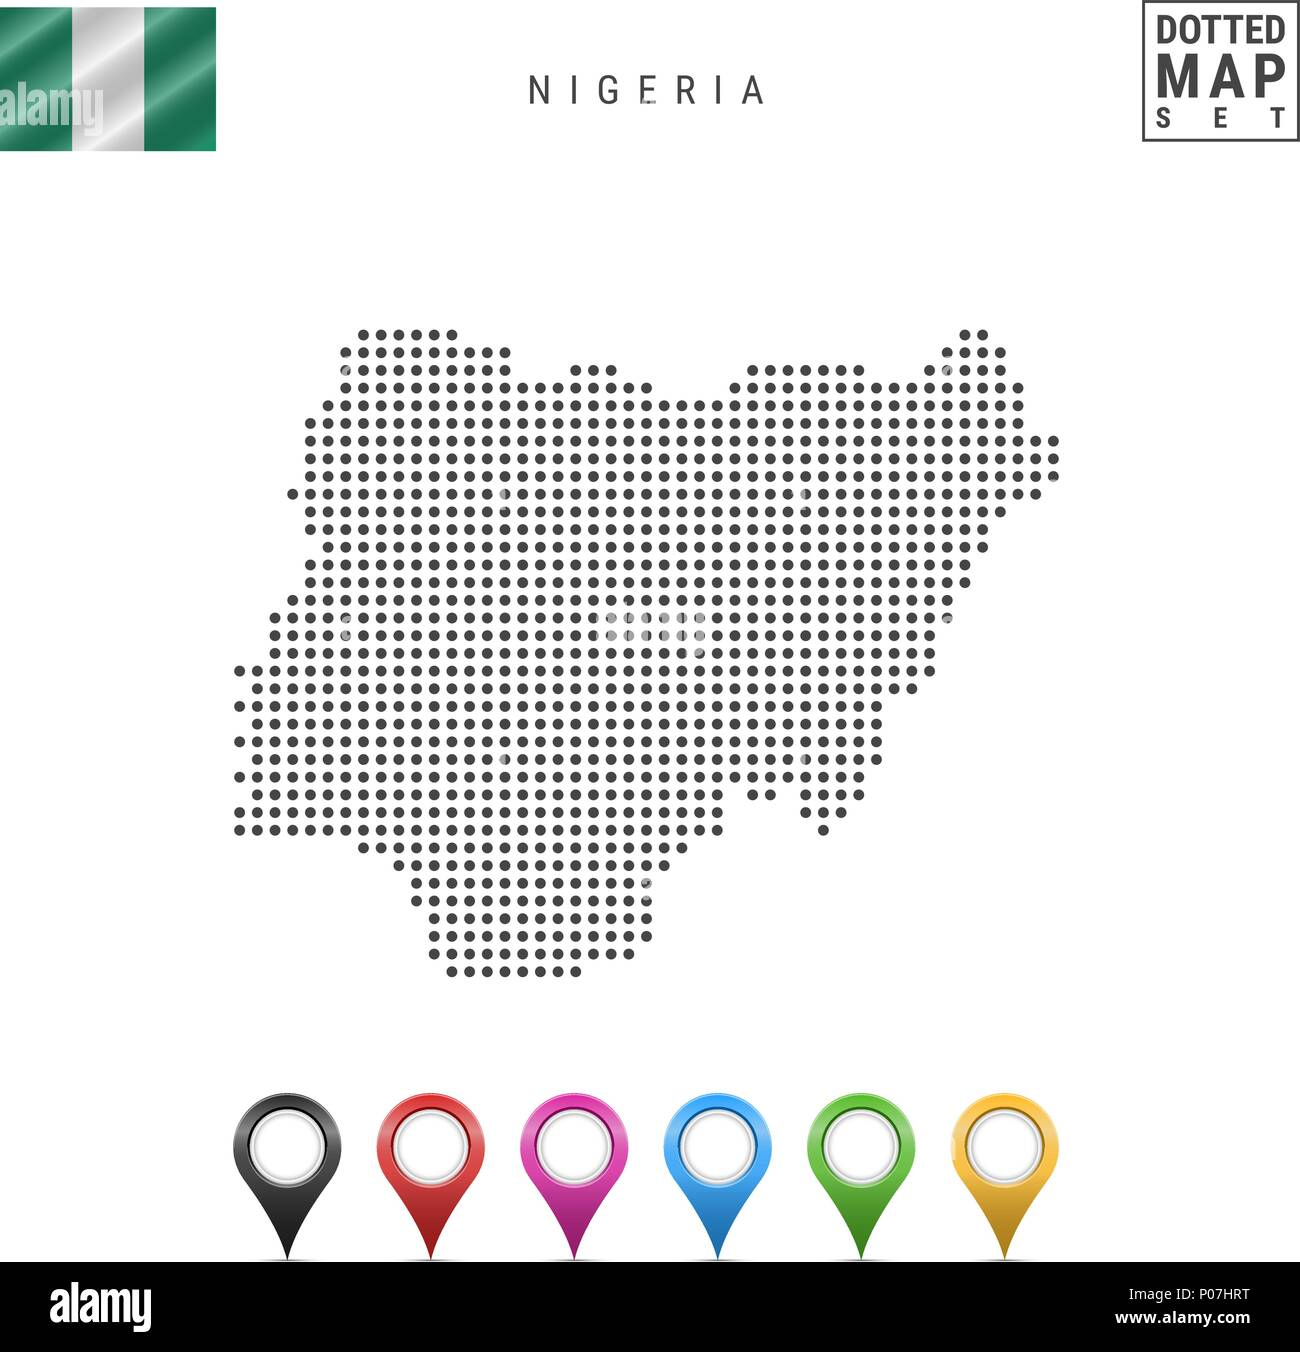 Vector Dotted Map of Nigeria. Simple Silhouette of Nigeria. National Flag of Nigeria. Set of Multicolored Map Markers - Stock Vector